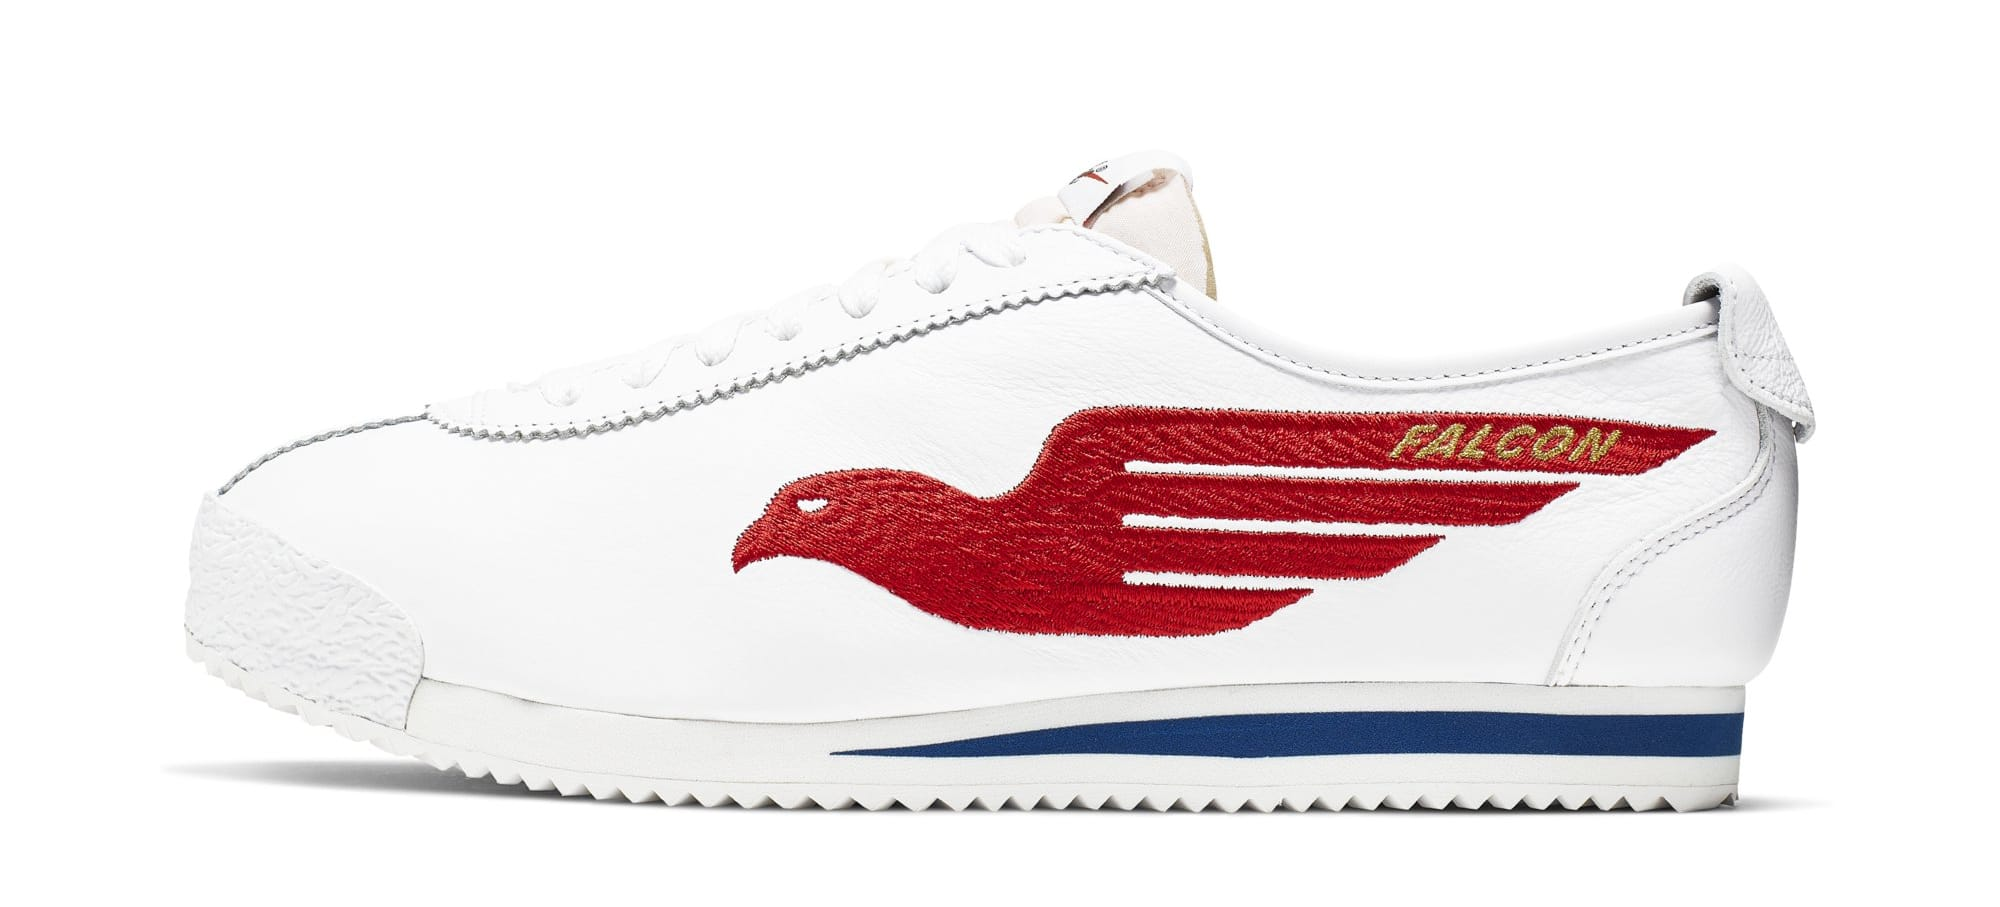 Nike Classic Cortez 'Shoe Dog Pack (Falcon)' CJ2586-101 (Lateral)